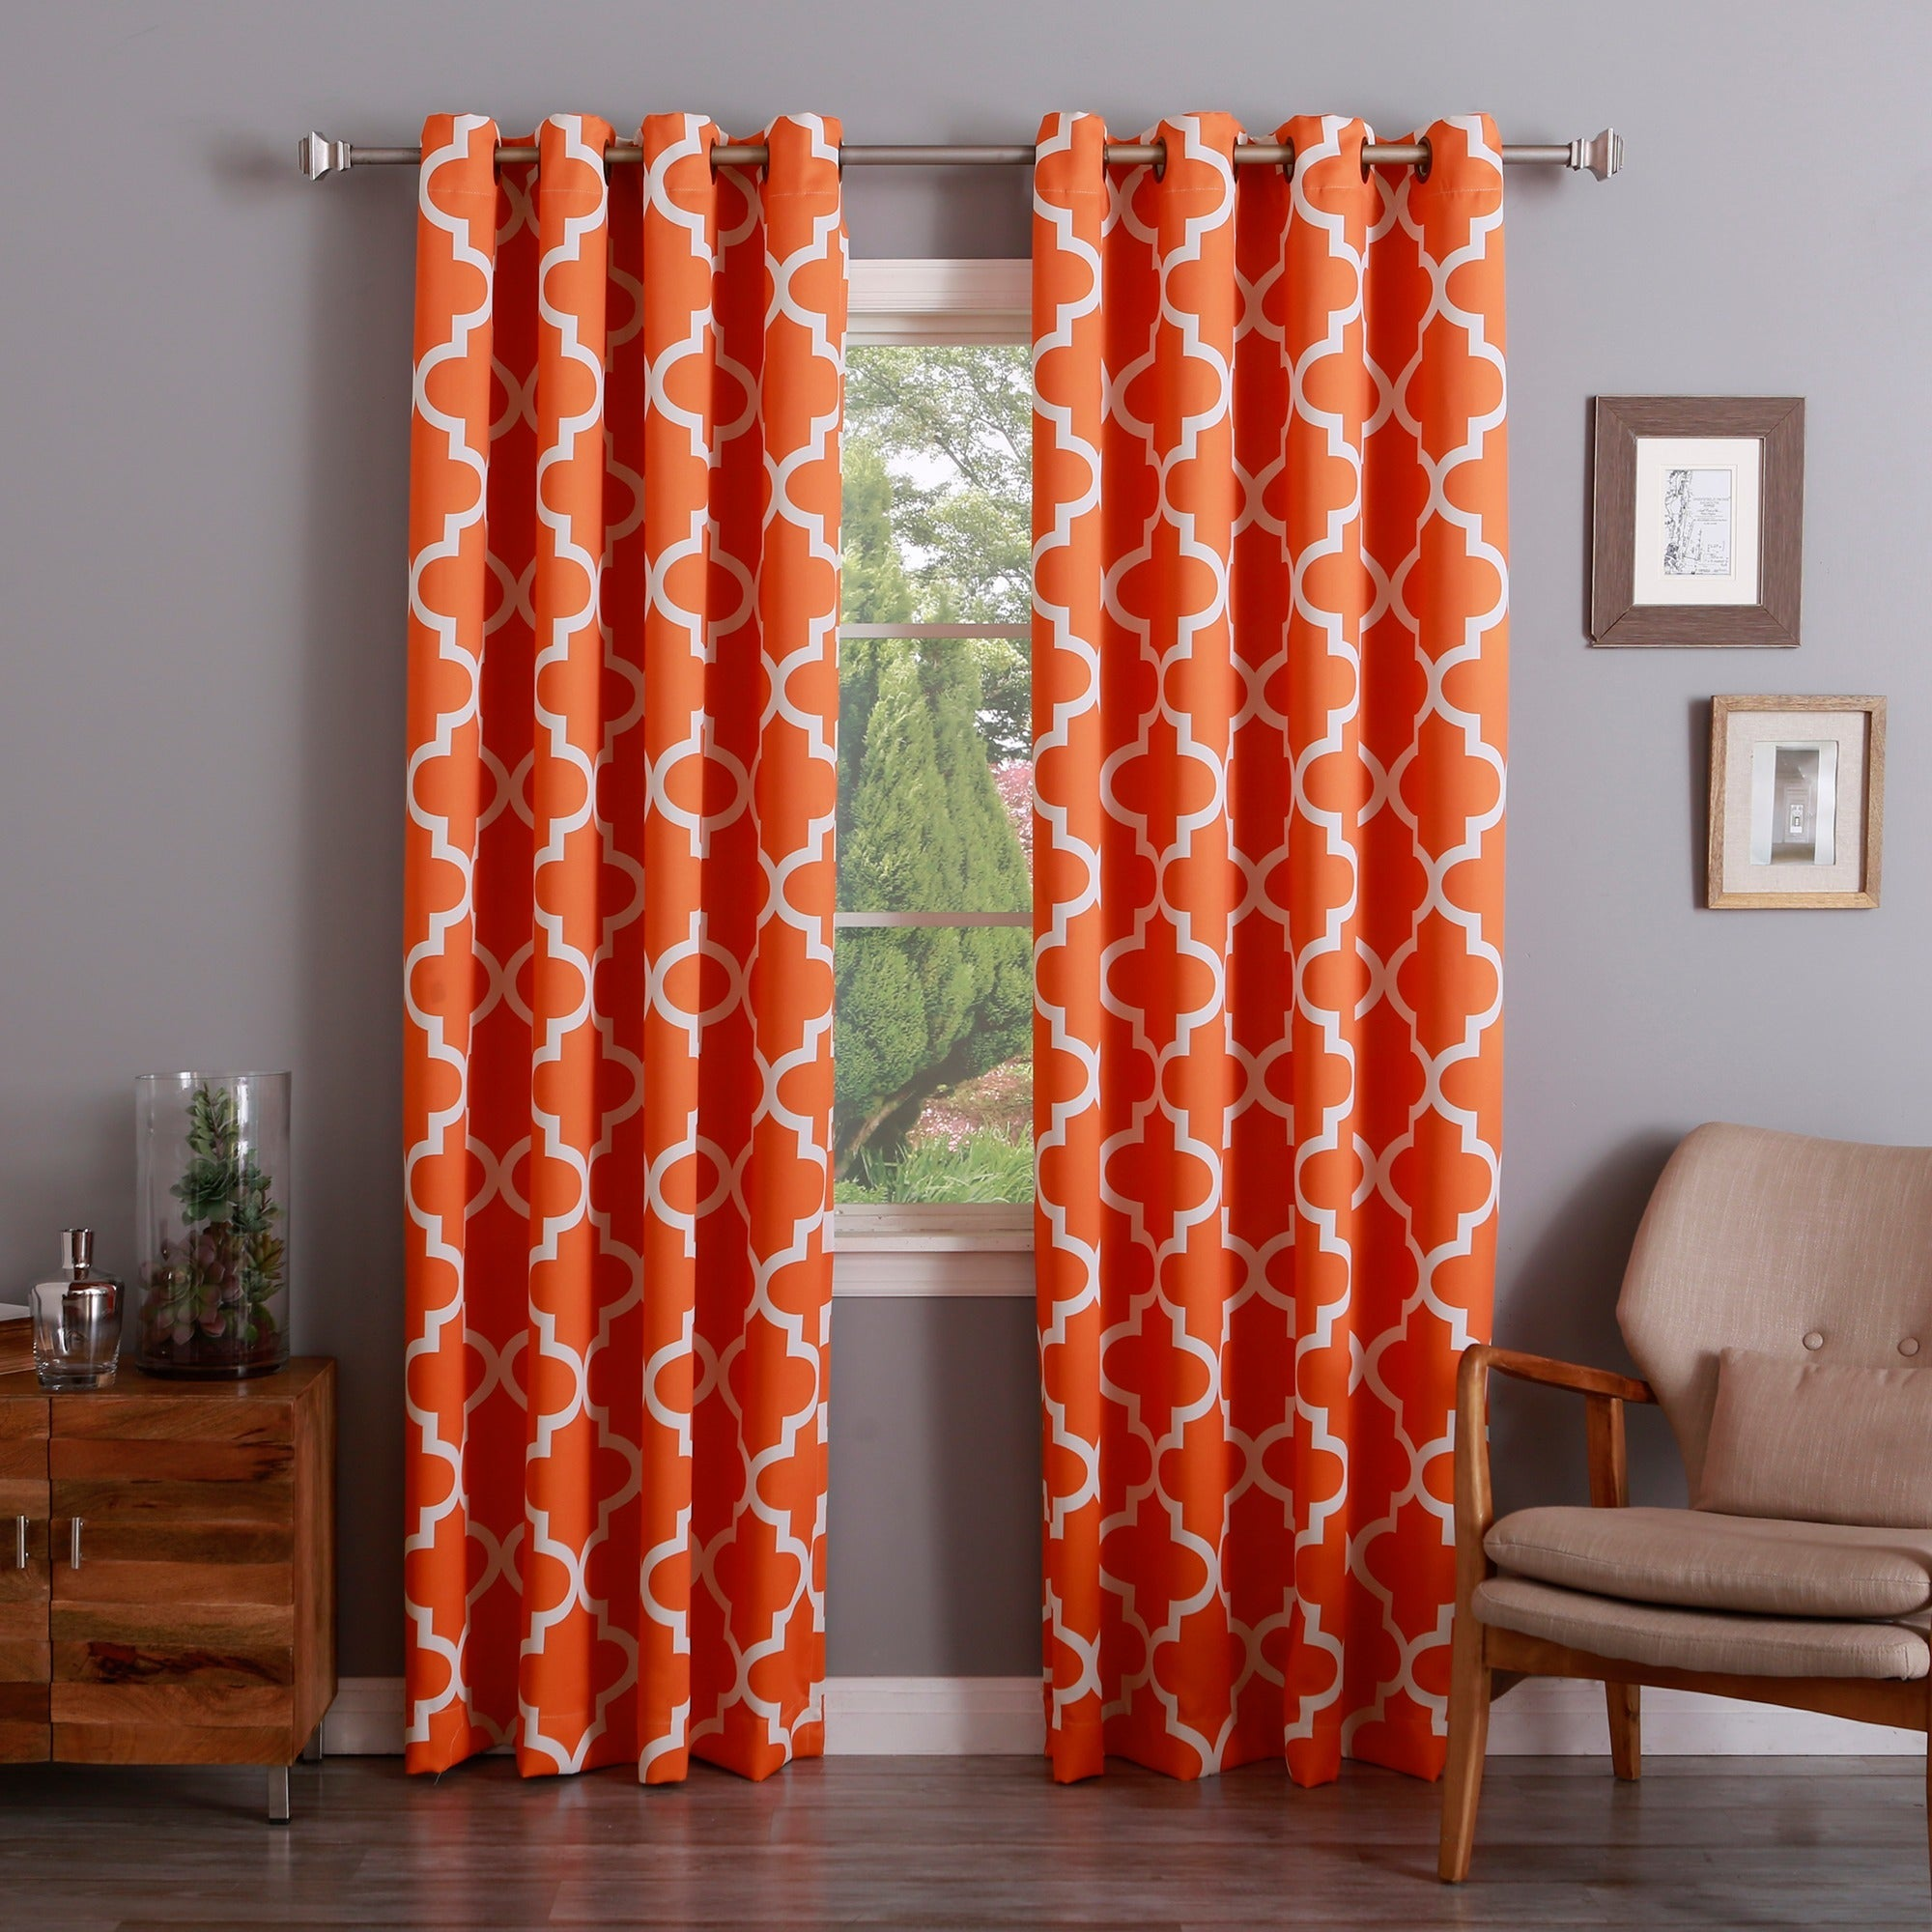 pics for and moroccan curtains sxs market drapes popular tile treatments appealing quilt world uncategorized style pattern drapeswindow